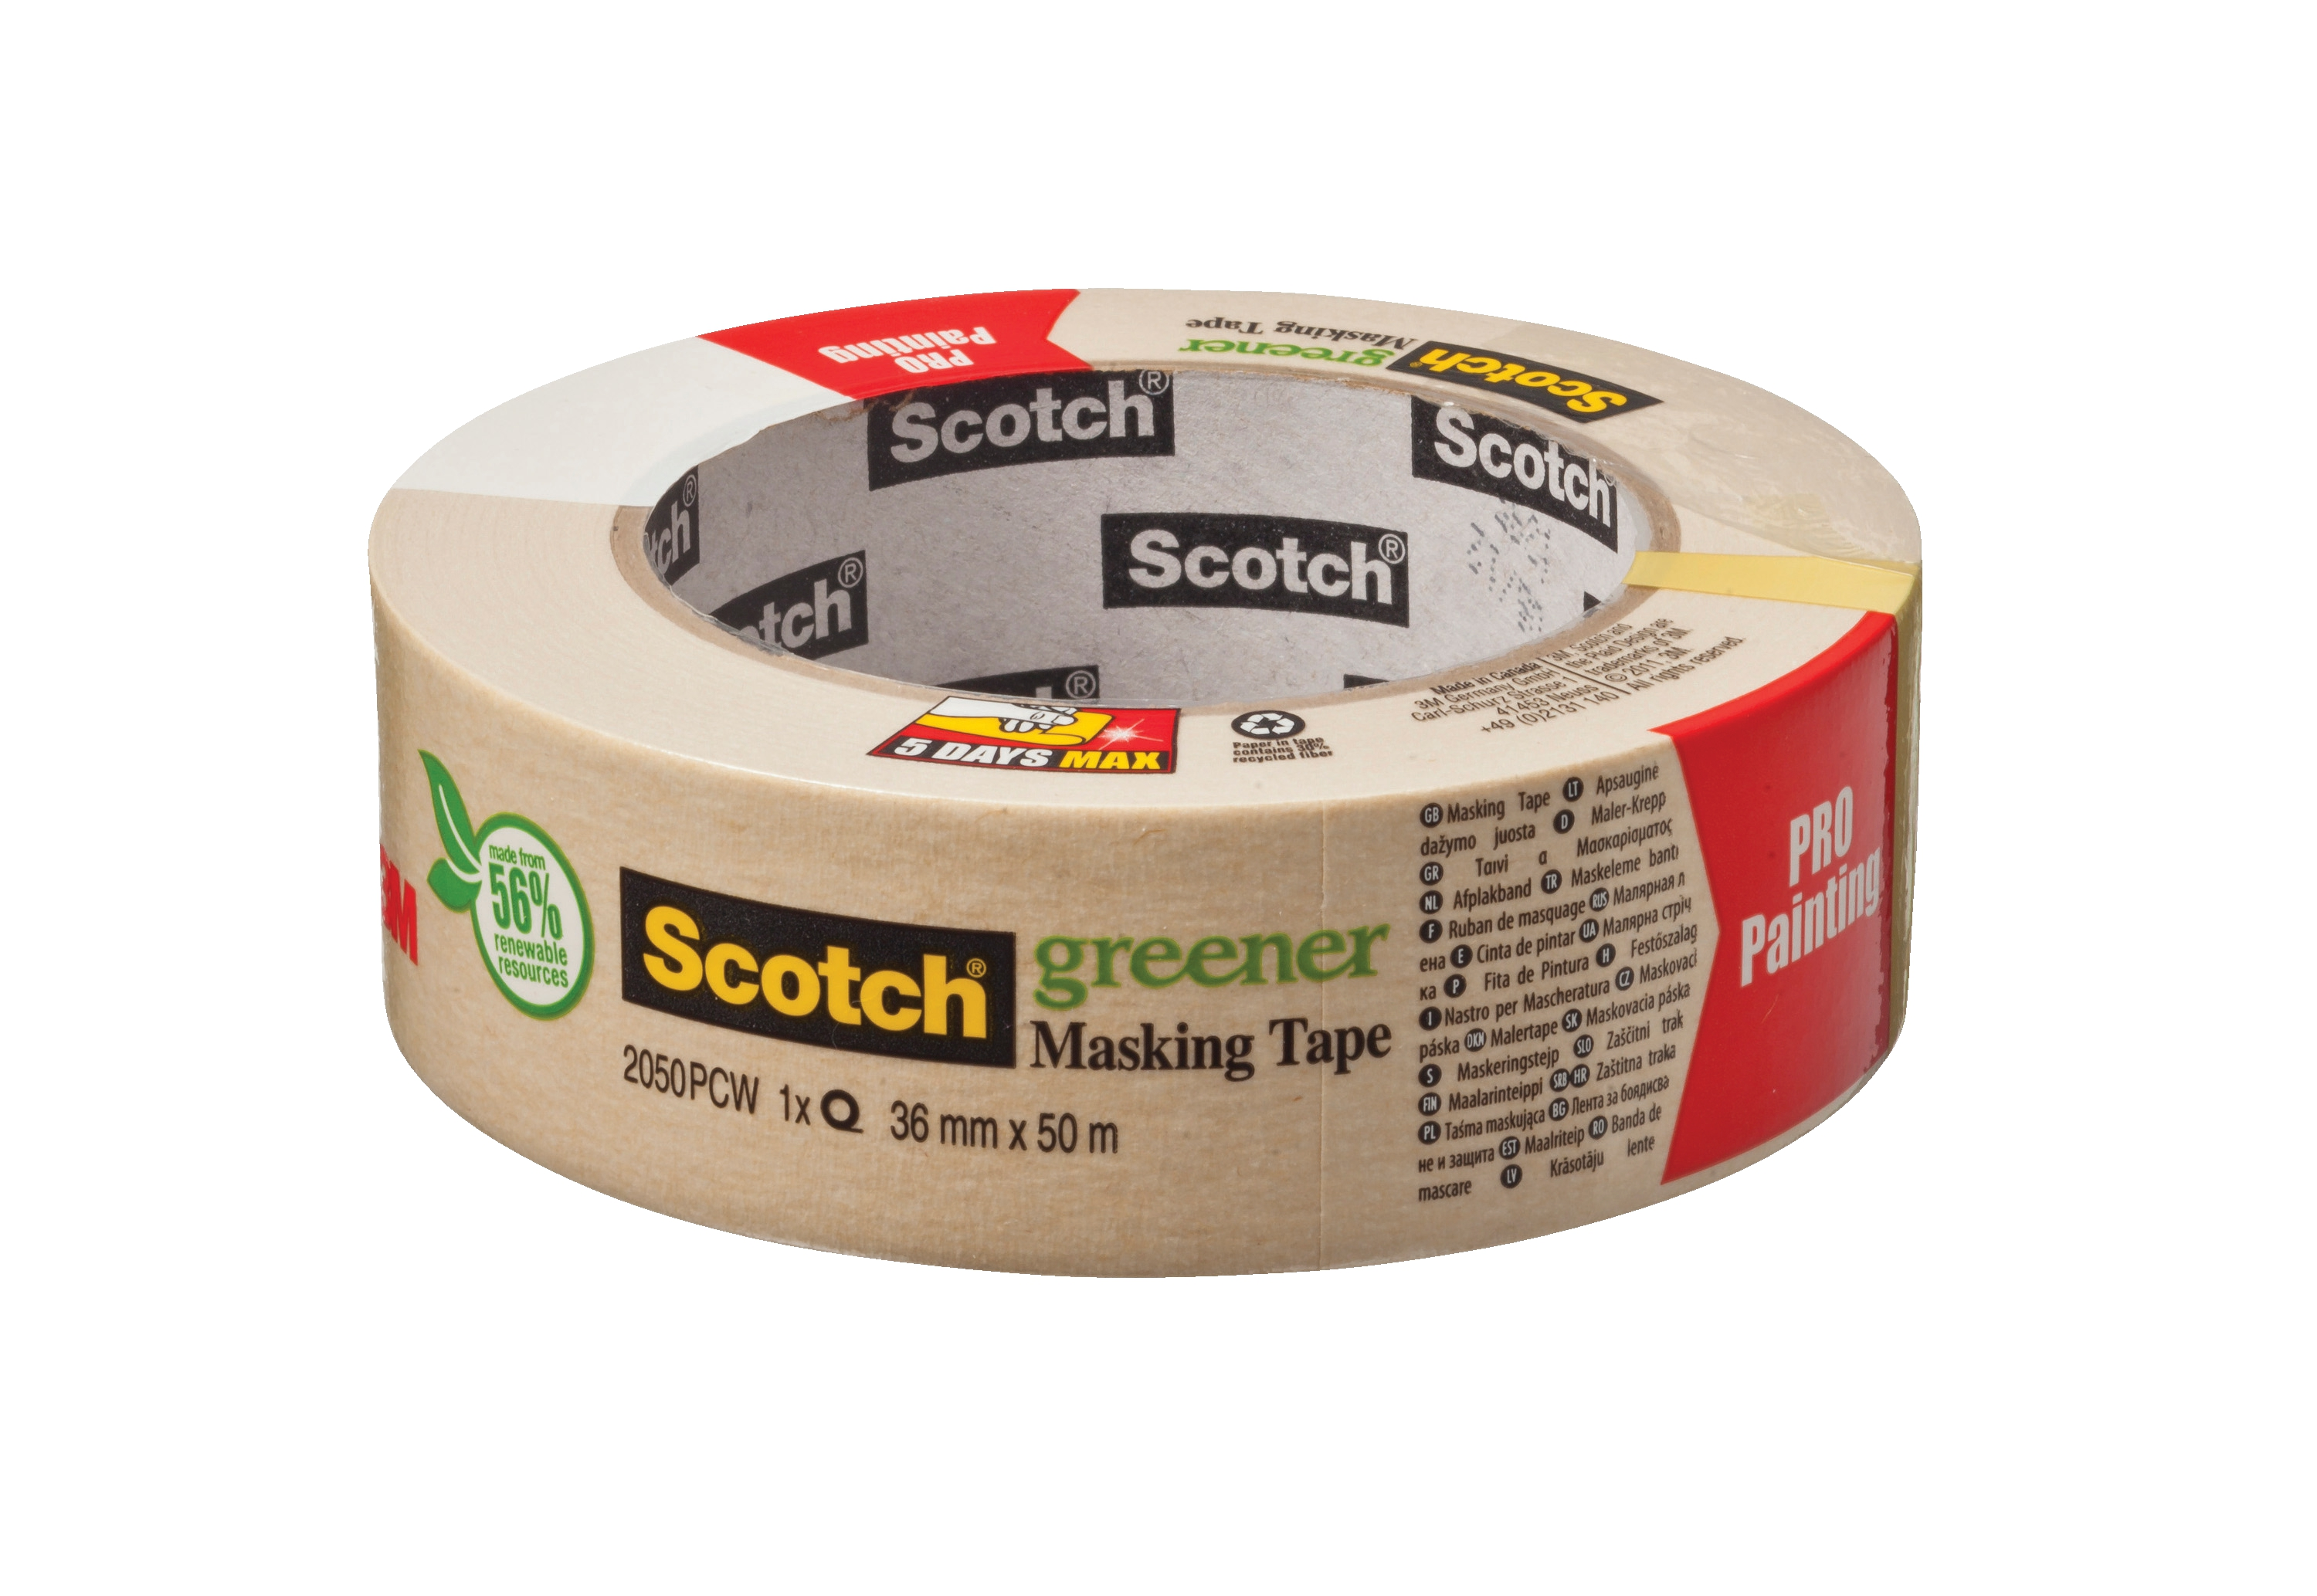 Image for Scotch Greener Masking Tape 36mmx50m Ref 2050 1.5A PCW